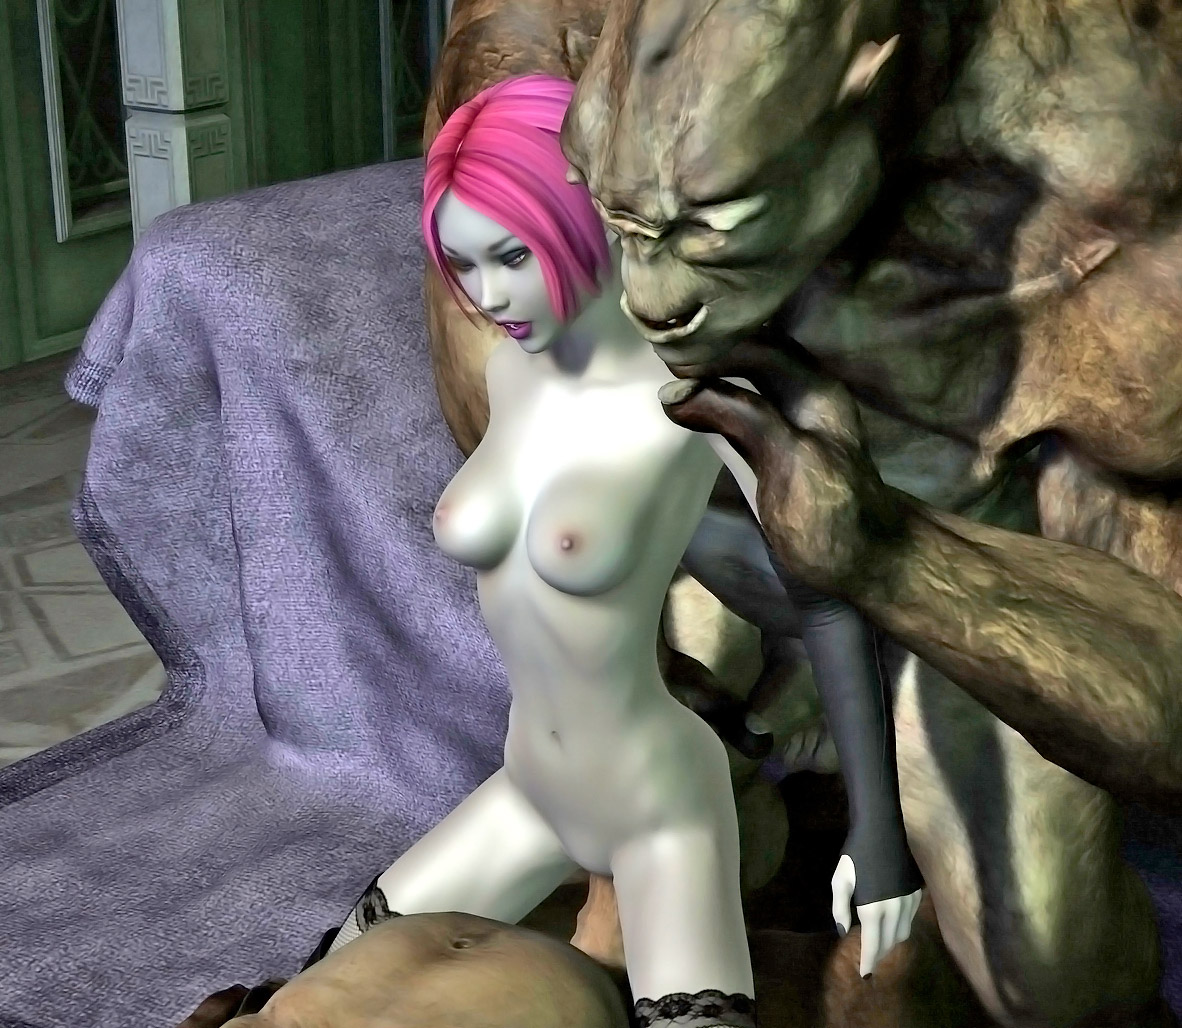 Hetai elve fucked by monsters cartoon download